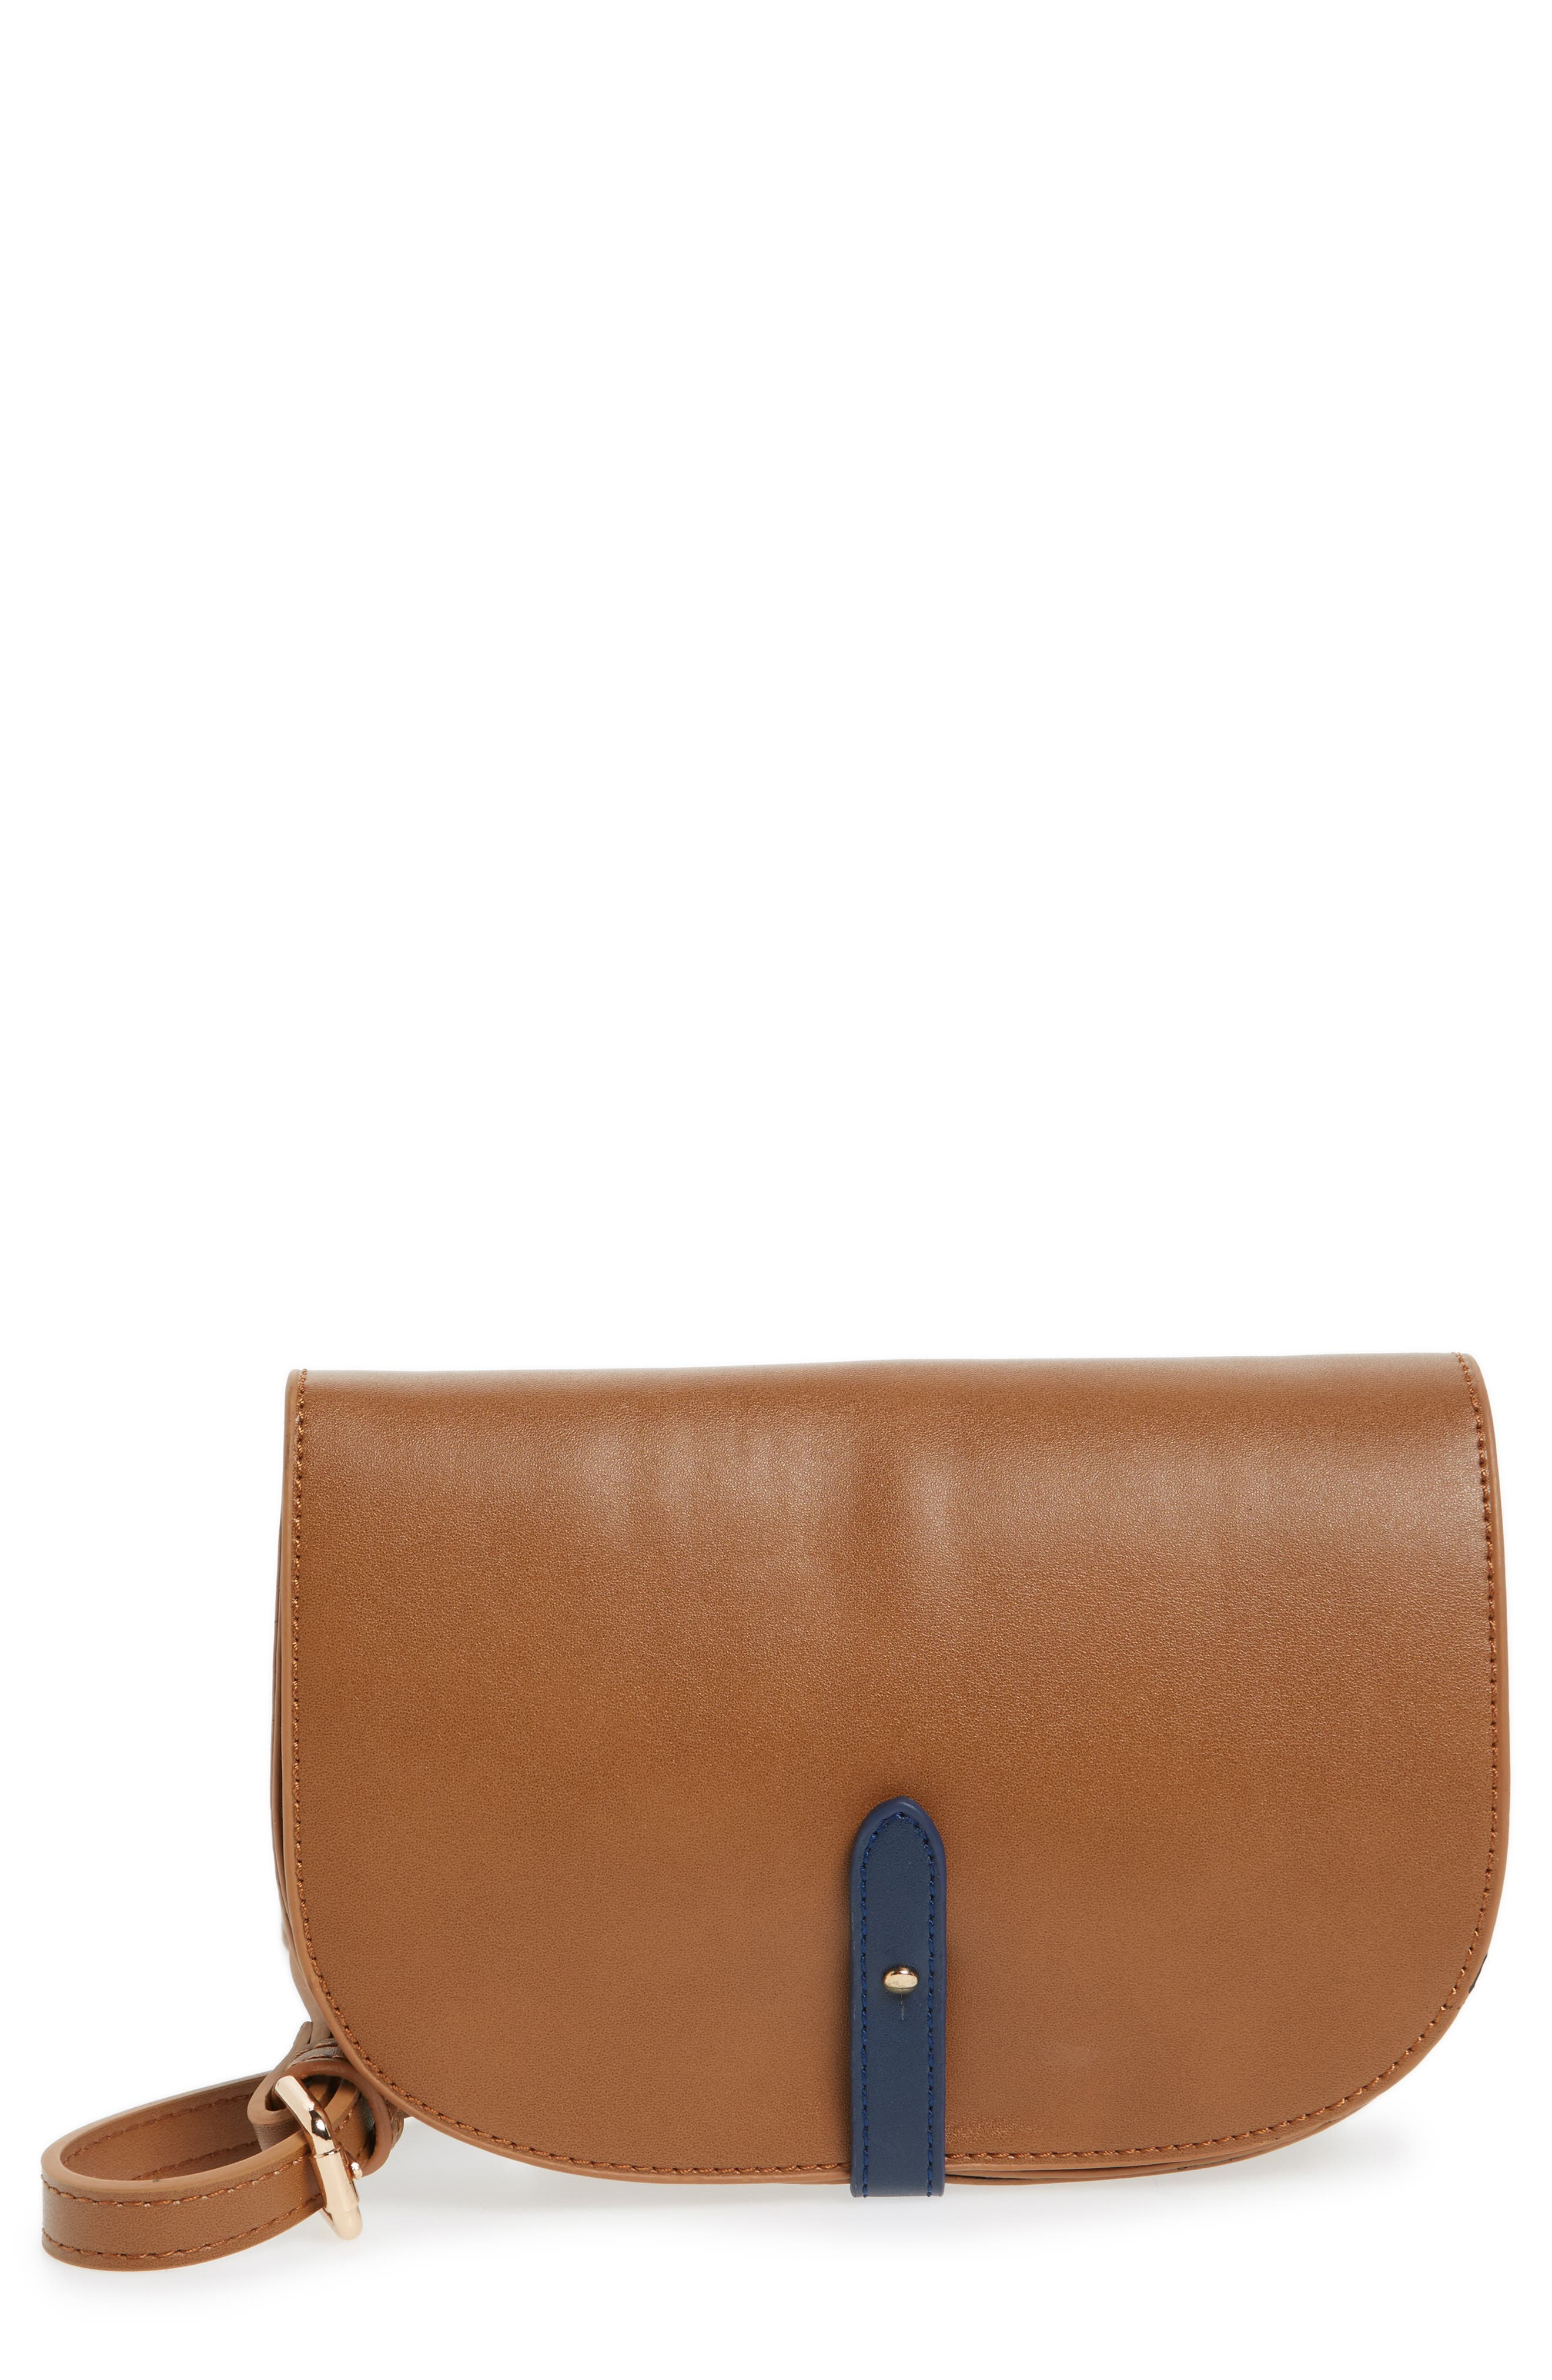 Faux Leather Half Moon Crossbody Bag, Main, color, 260